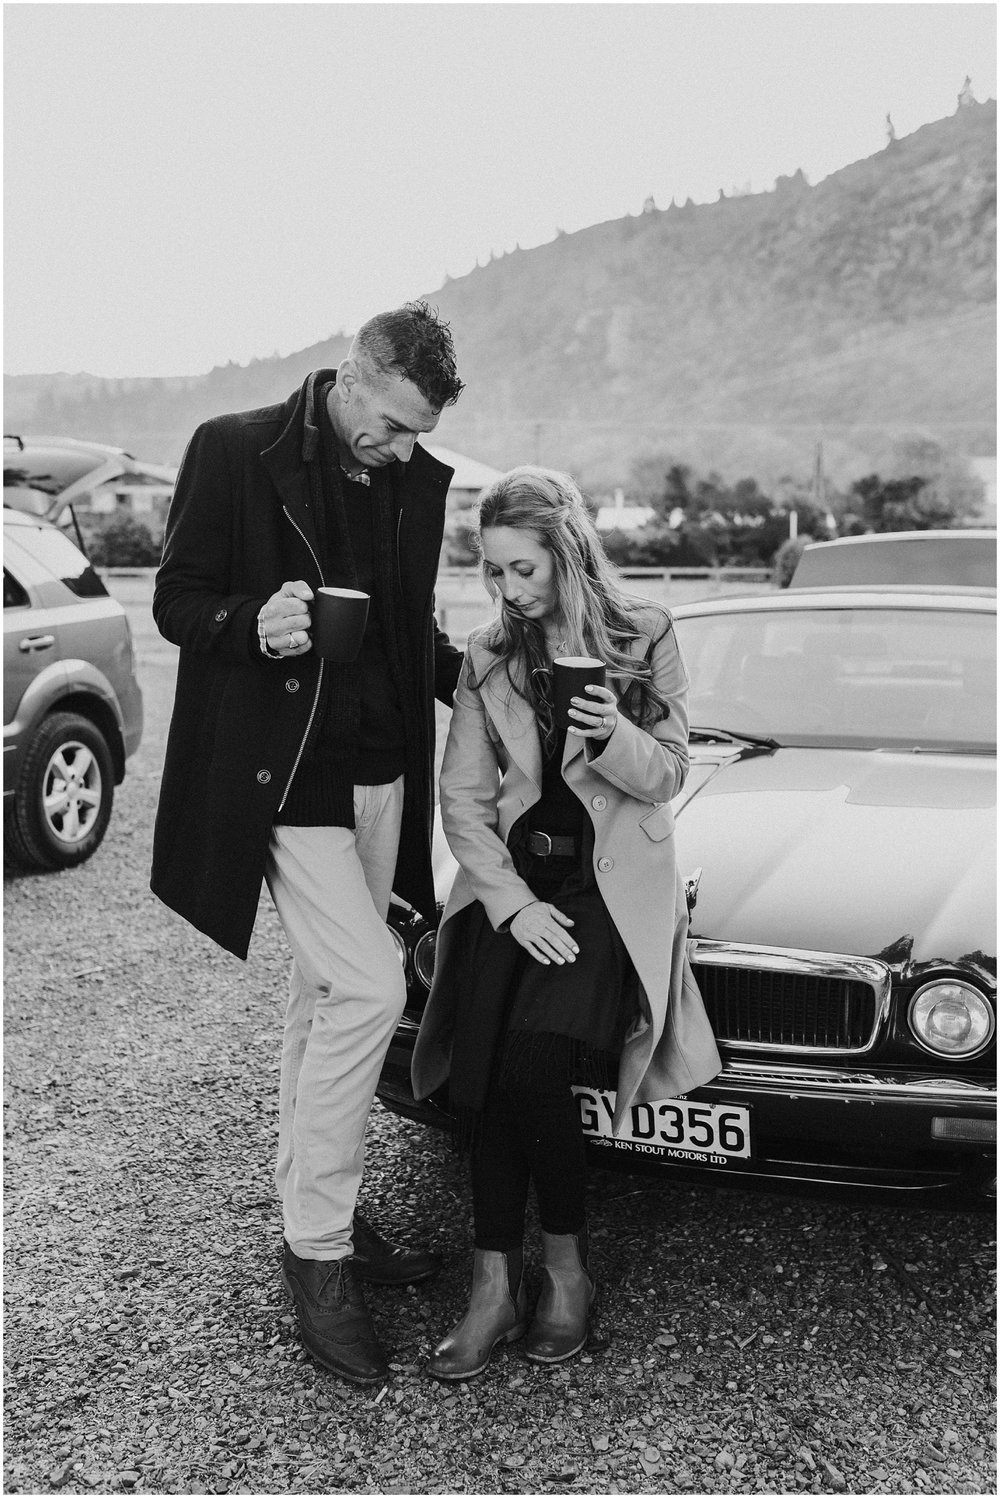 Couple by car drinking coffee